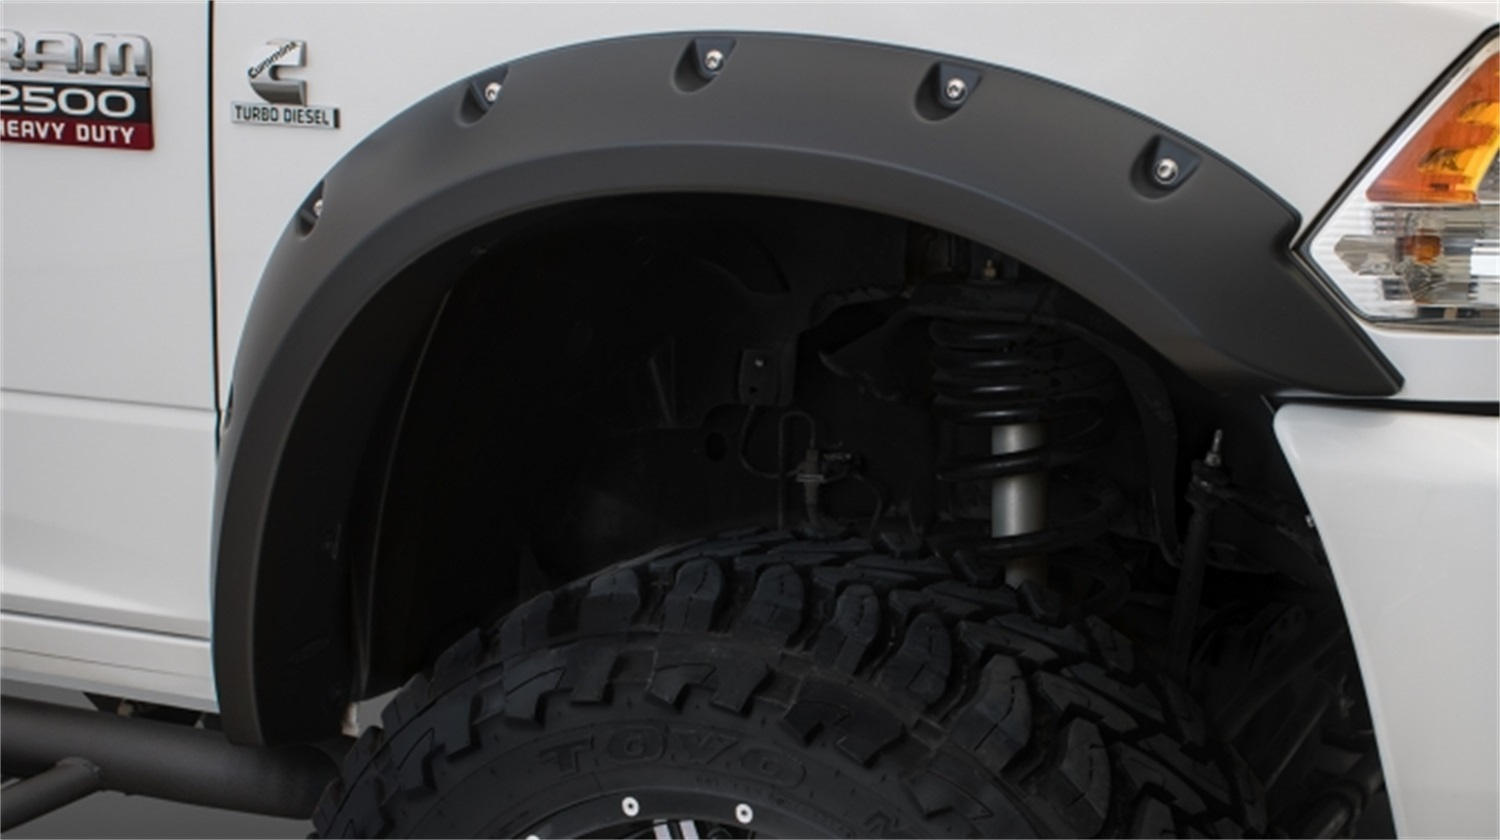 Max Coverage Pocket Styler Fender Flares, 4 pc., Front Tire Coverage 3.5 in., Front Height 4.75 in., Rear Tire Coverage 3 in, Rear Height 4.75 in., Smooth Finish, Black